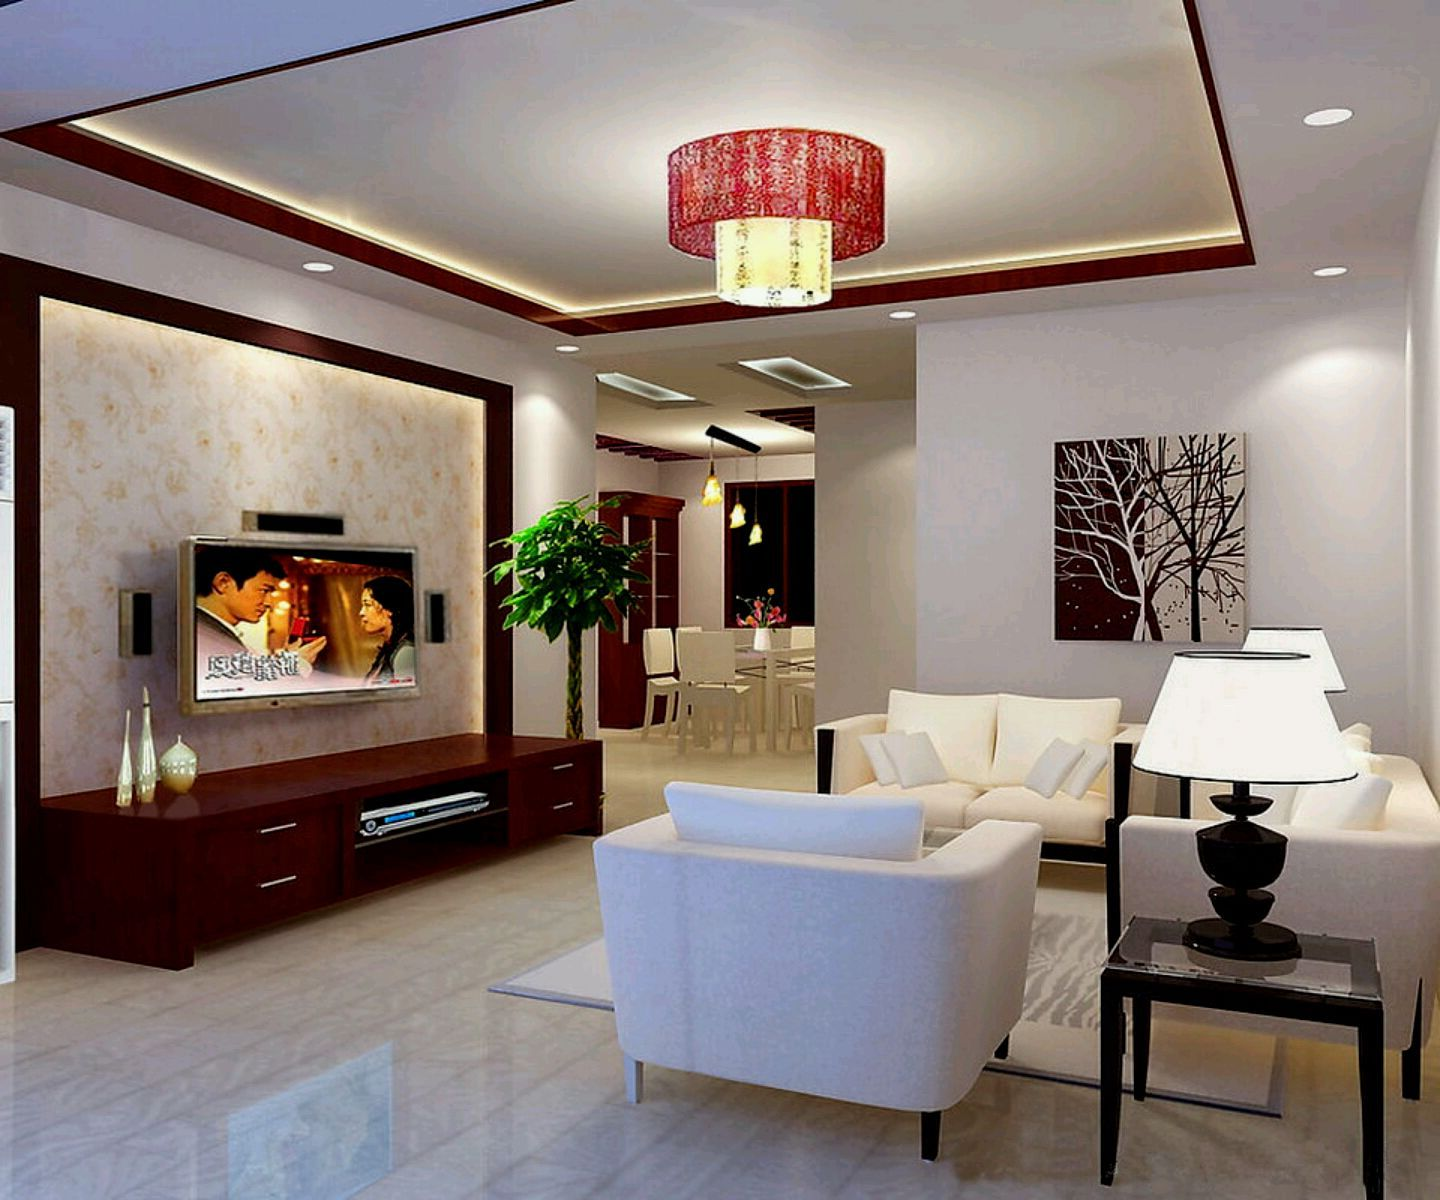 Ceiling Designs For Bedrooms Inspiration Ceilingdesignfordrawingroominpakistanceilingdesignsfor Review